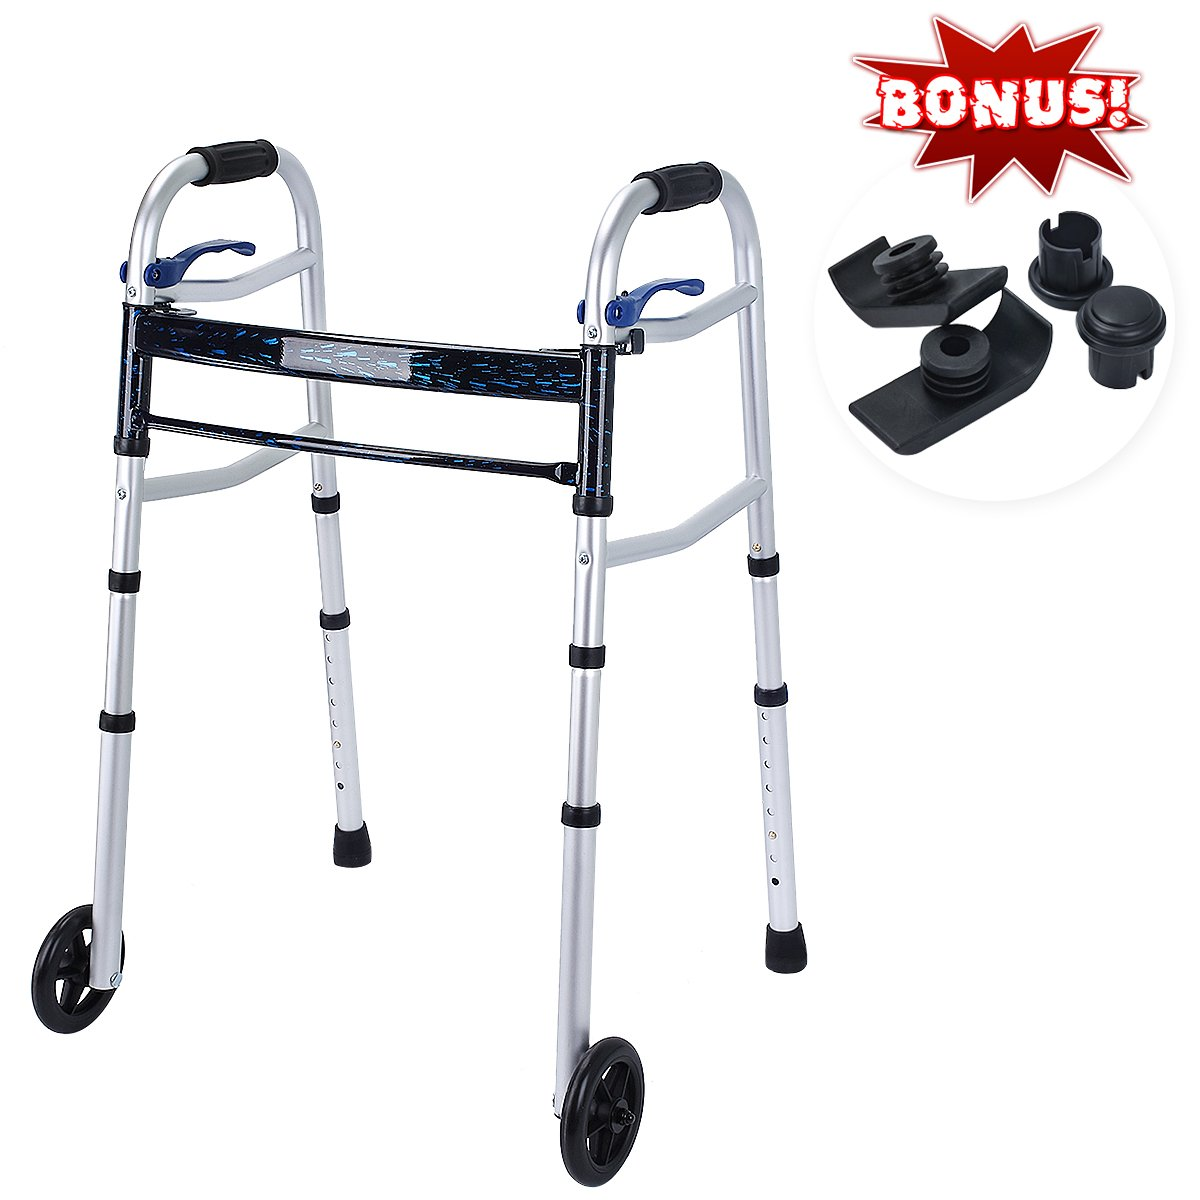 Healthline Compact Trigger Release 350 lbs Folding Walker with 5'' Wheels and Fold-up Legs, Lightweight & Portable - w/Bonus 2 Pairs of Glides by HEALTH LINE MASSAGE PRODUCTS